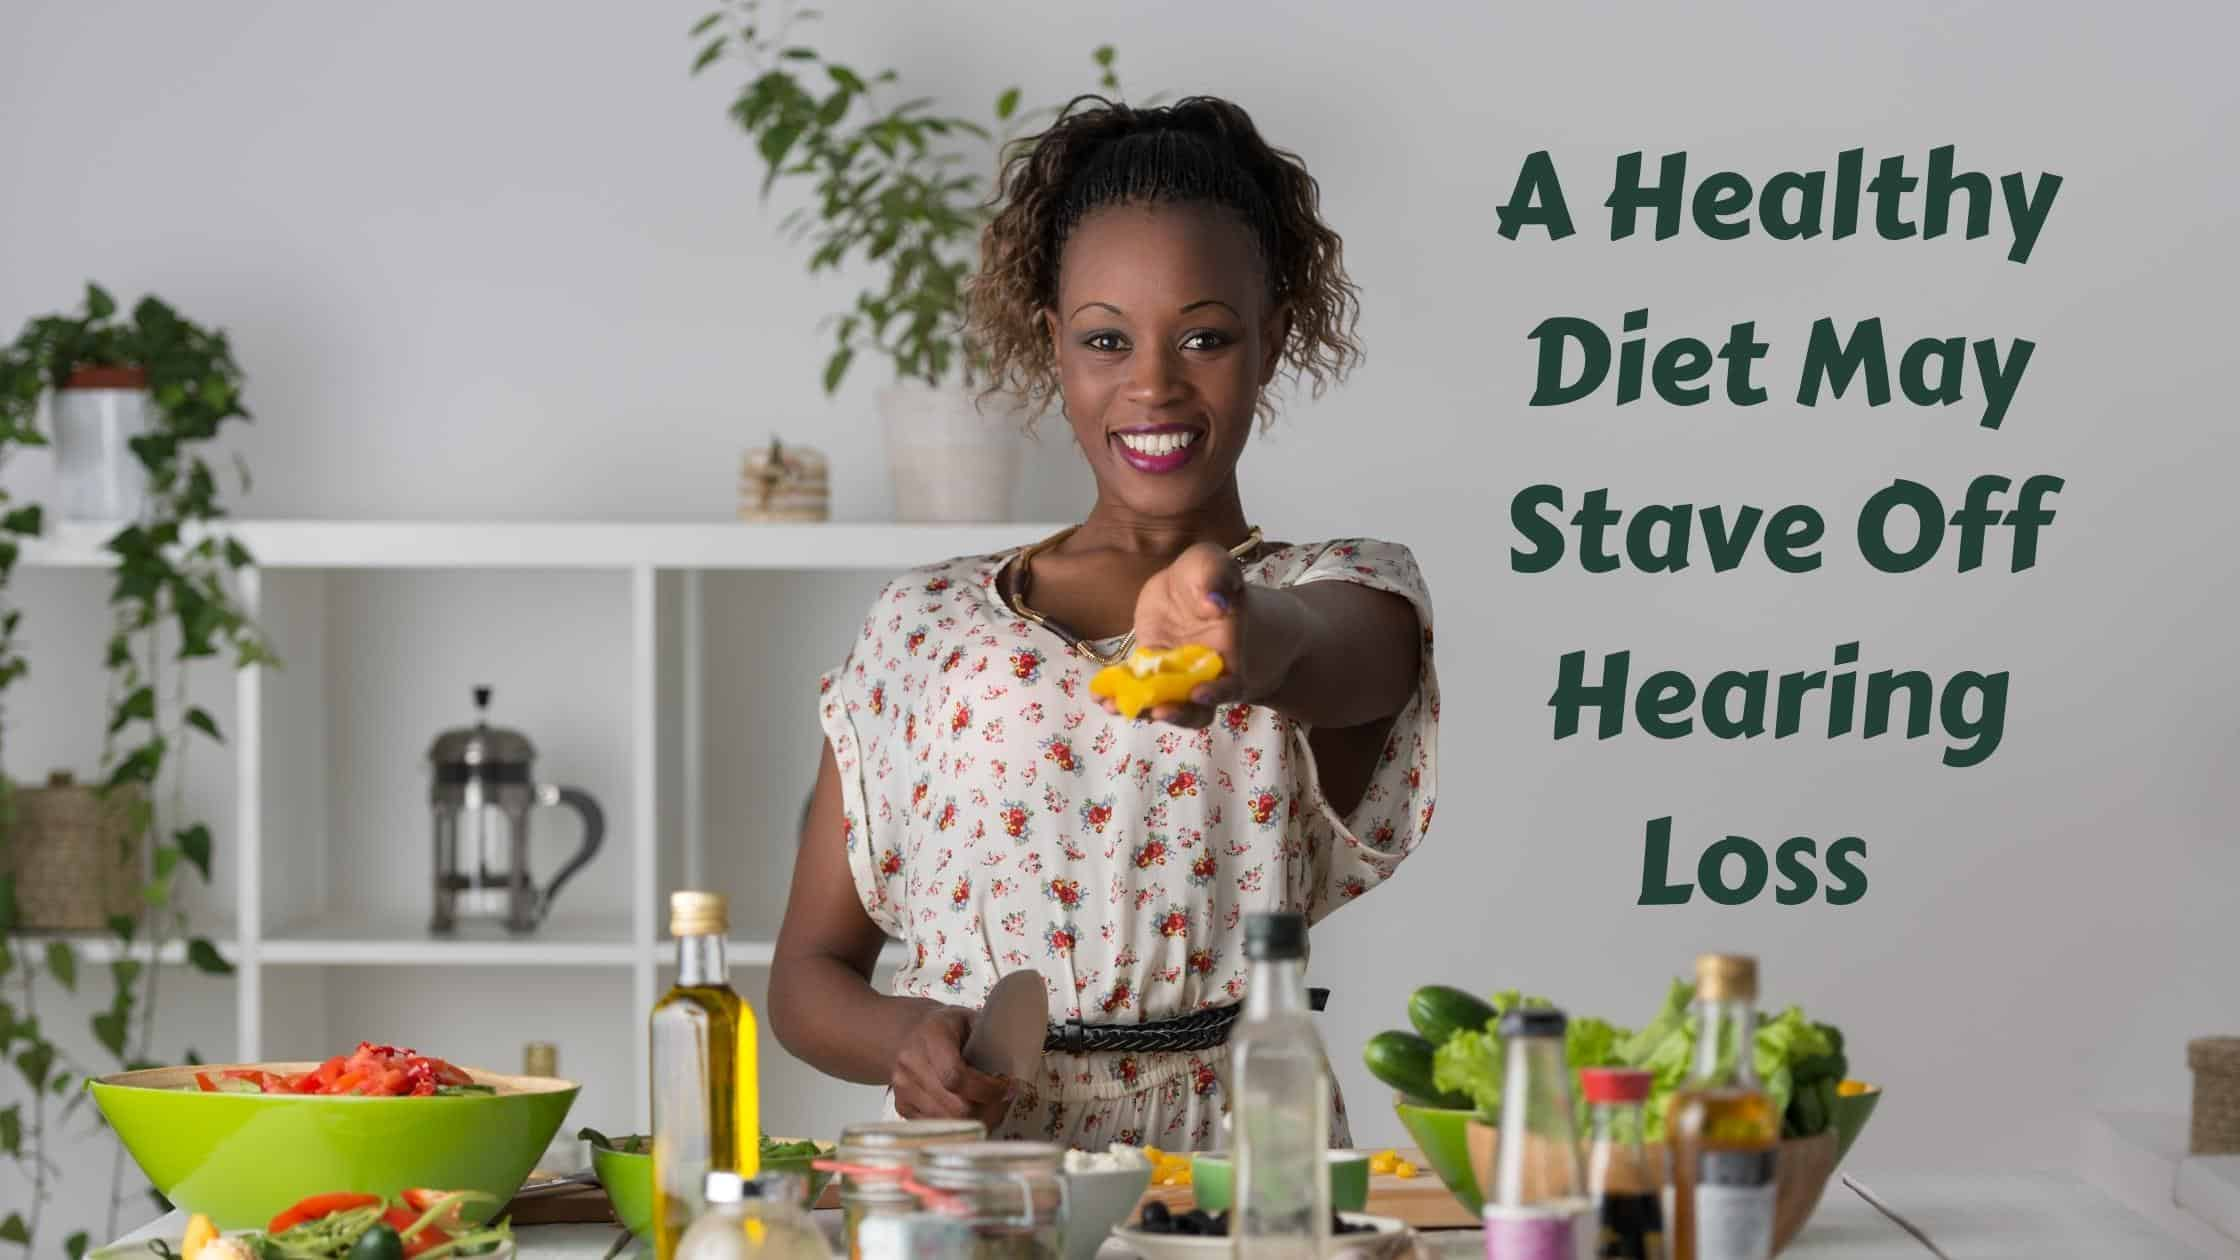 A Healthy Diet May Stave Off Hearing Loss